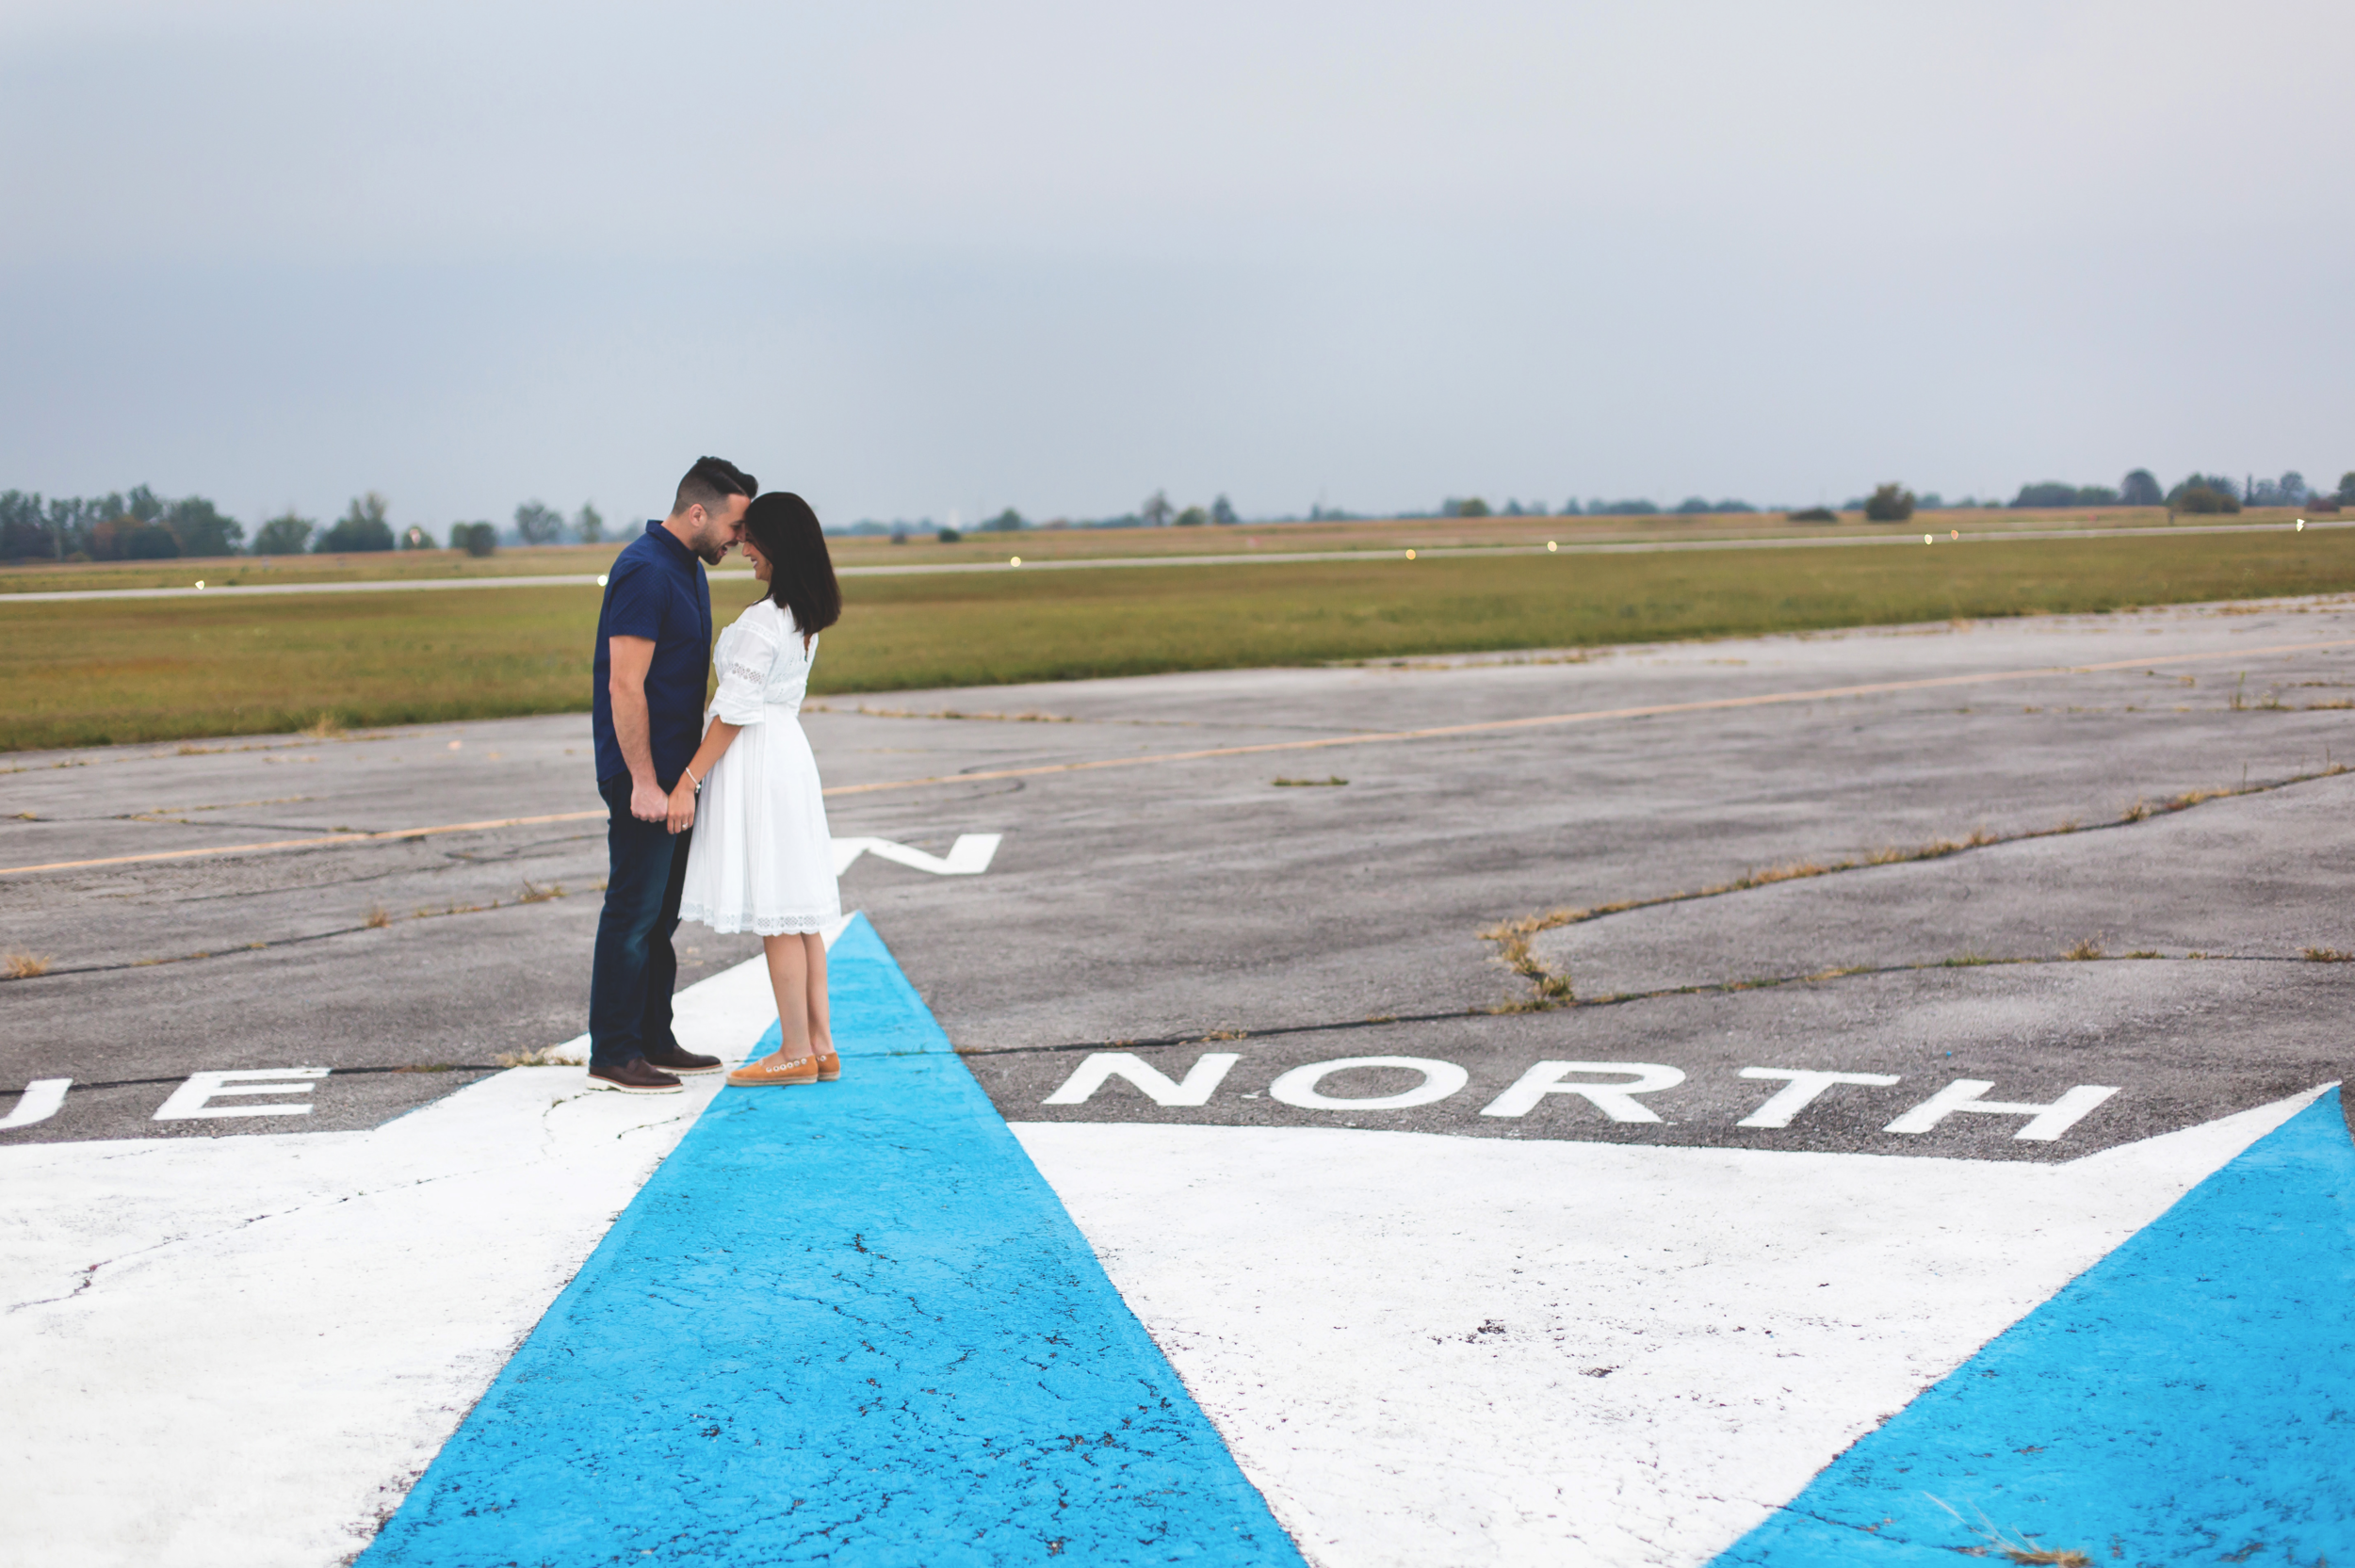 Engagement-Session-Hamilton-Burlington-Oakville-Toronto-Niagara-Wedding-Photographer-Engaged-Photography-Brantford-Airport-HamOnt-Engaged-Moments-by-Lauren-Photo-Image-27.png